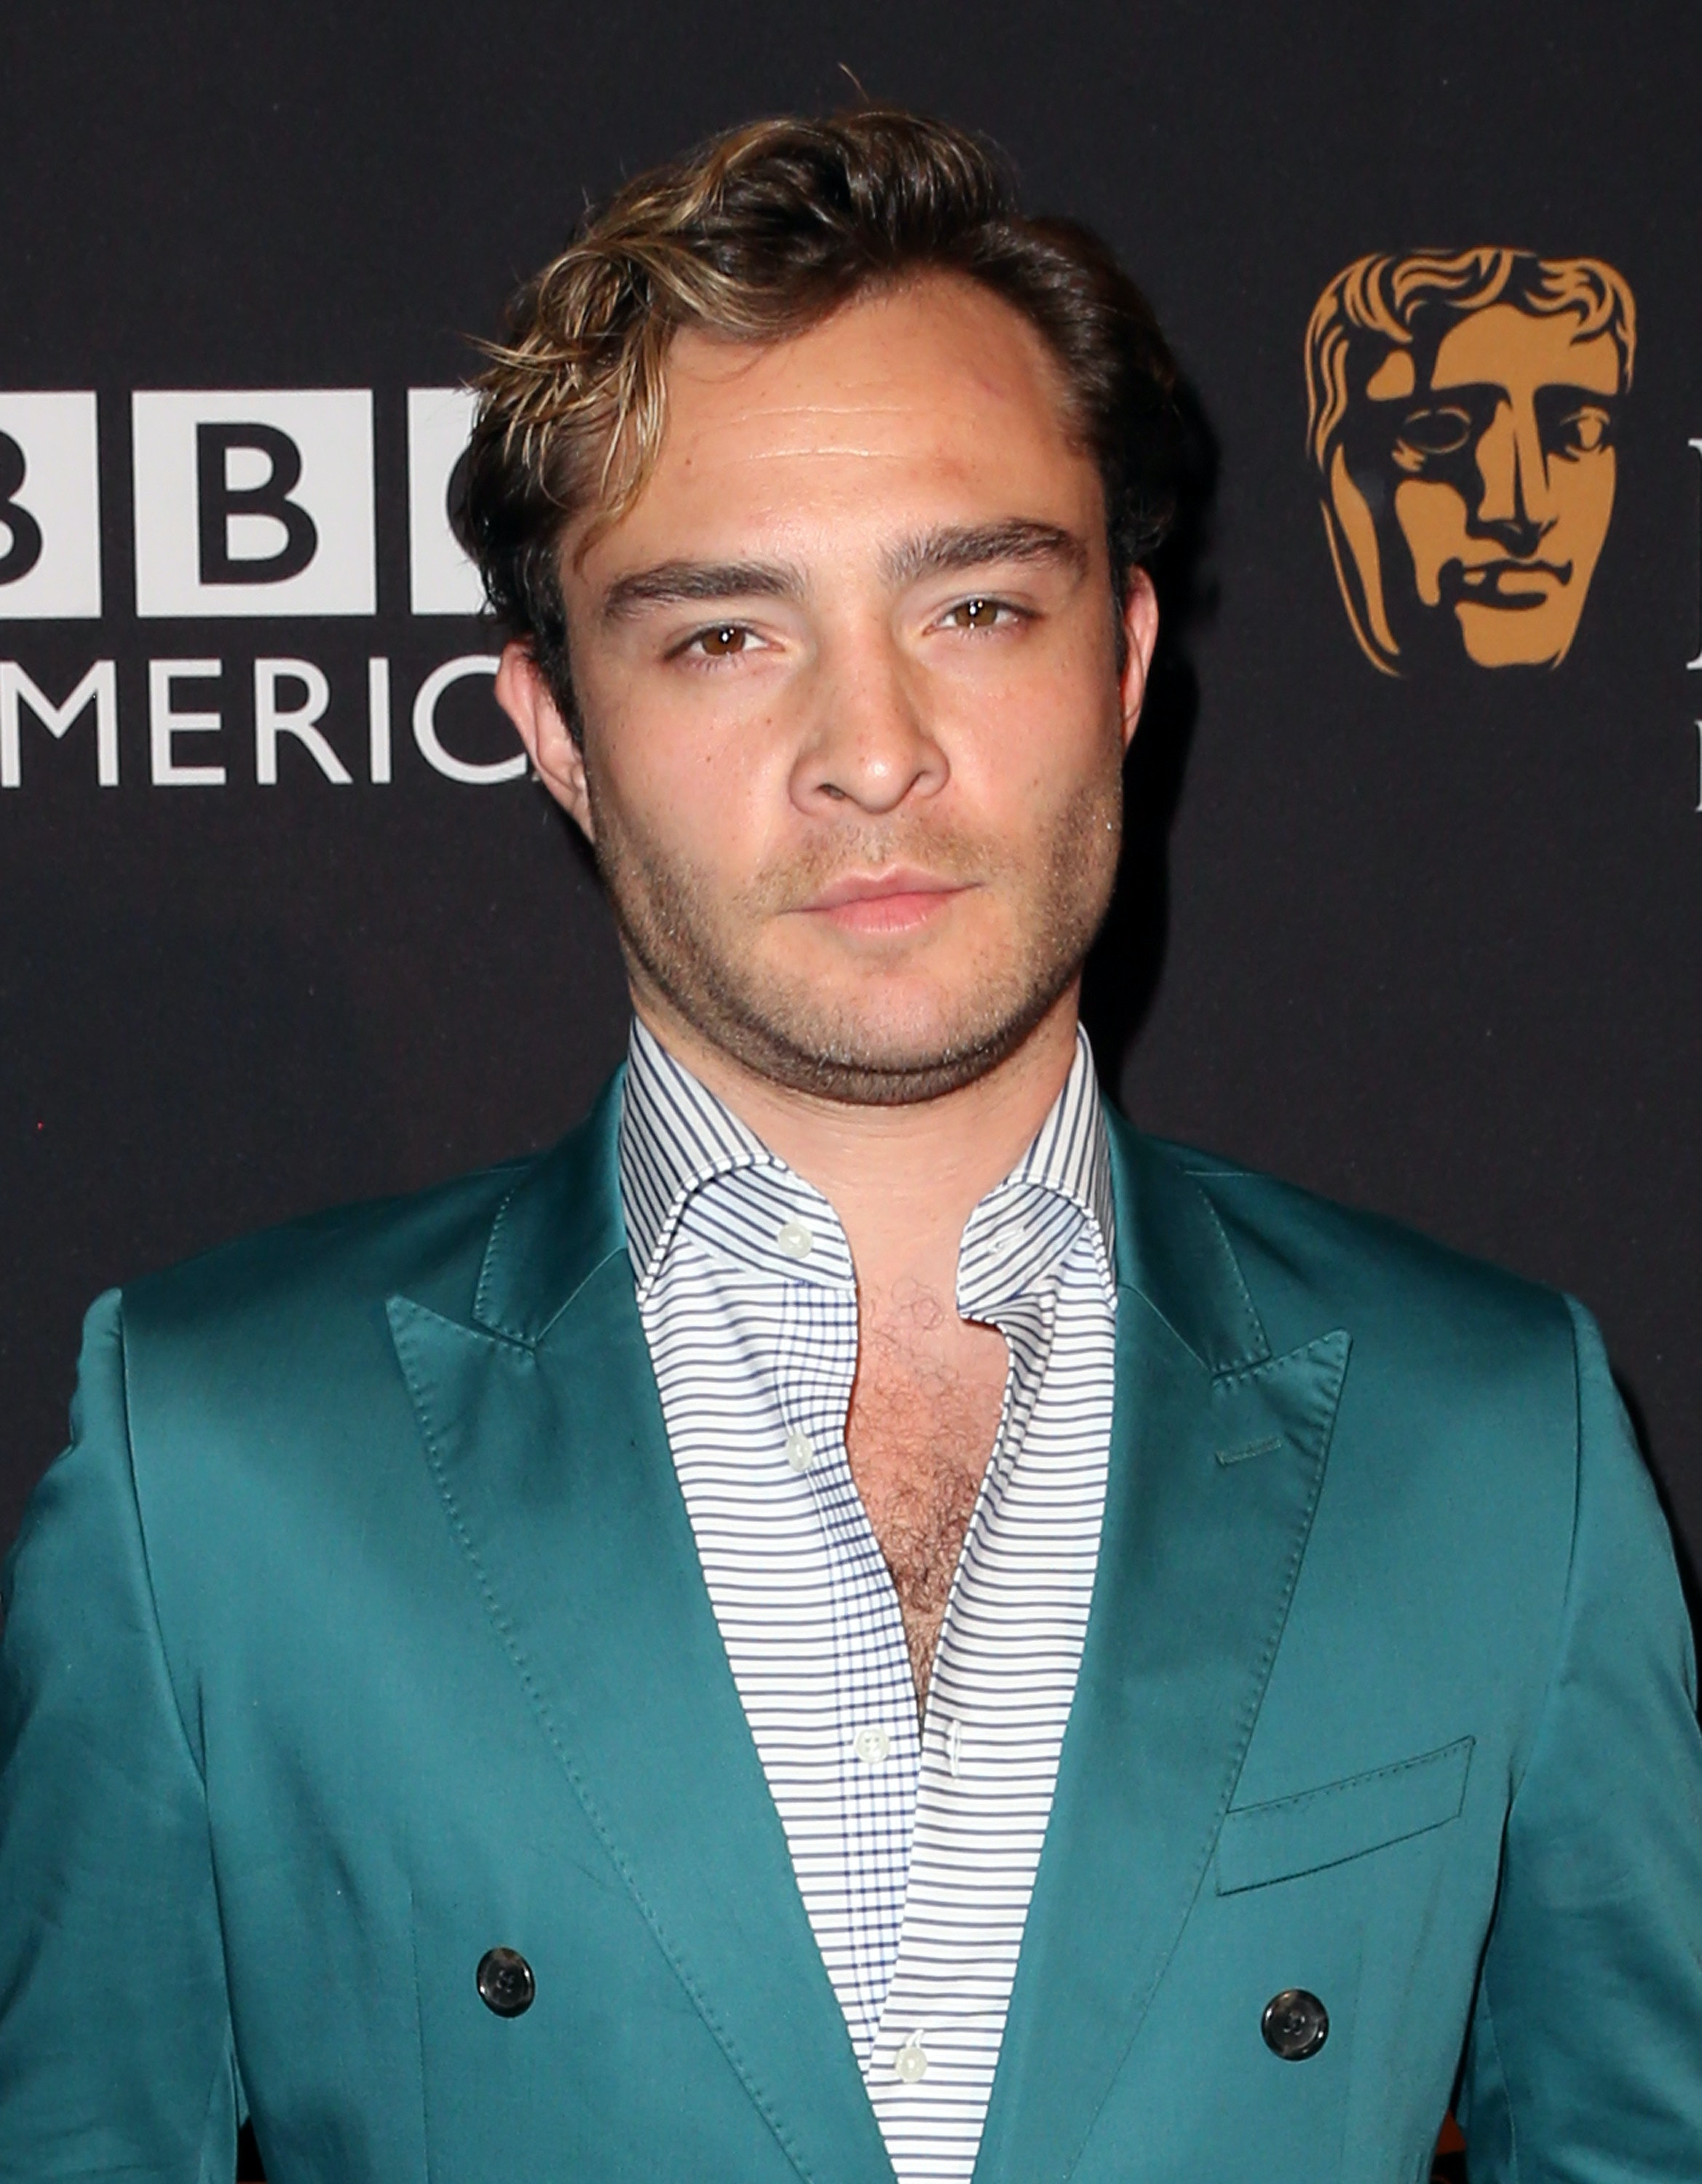 'Gossip Girl' star Ed Westwick is accused of raping an actress